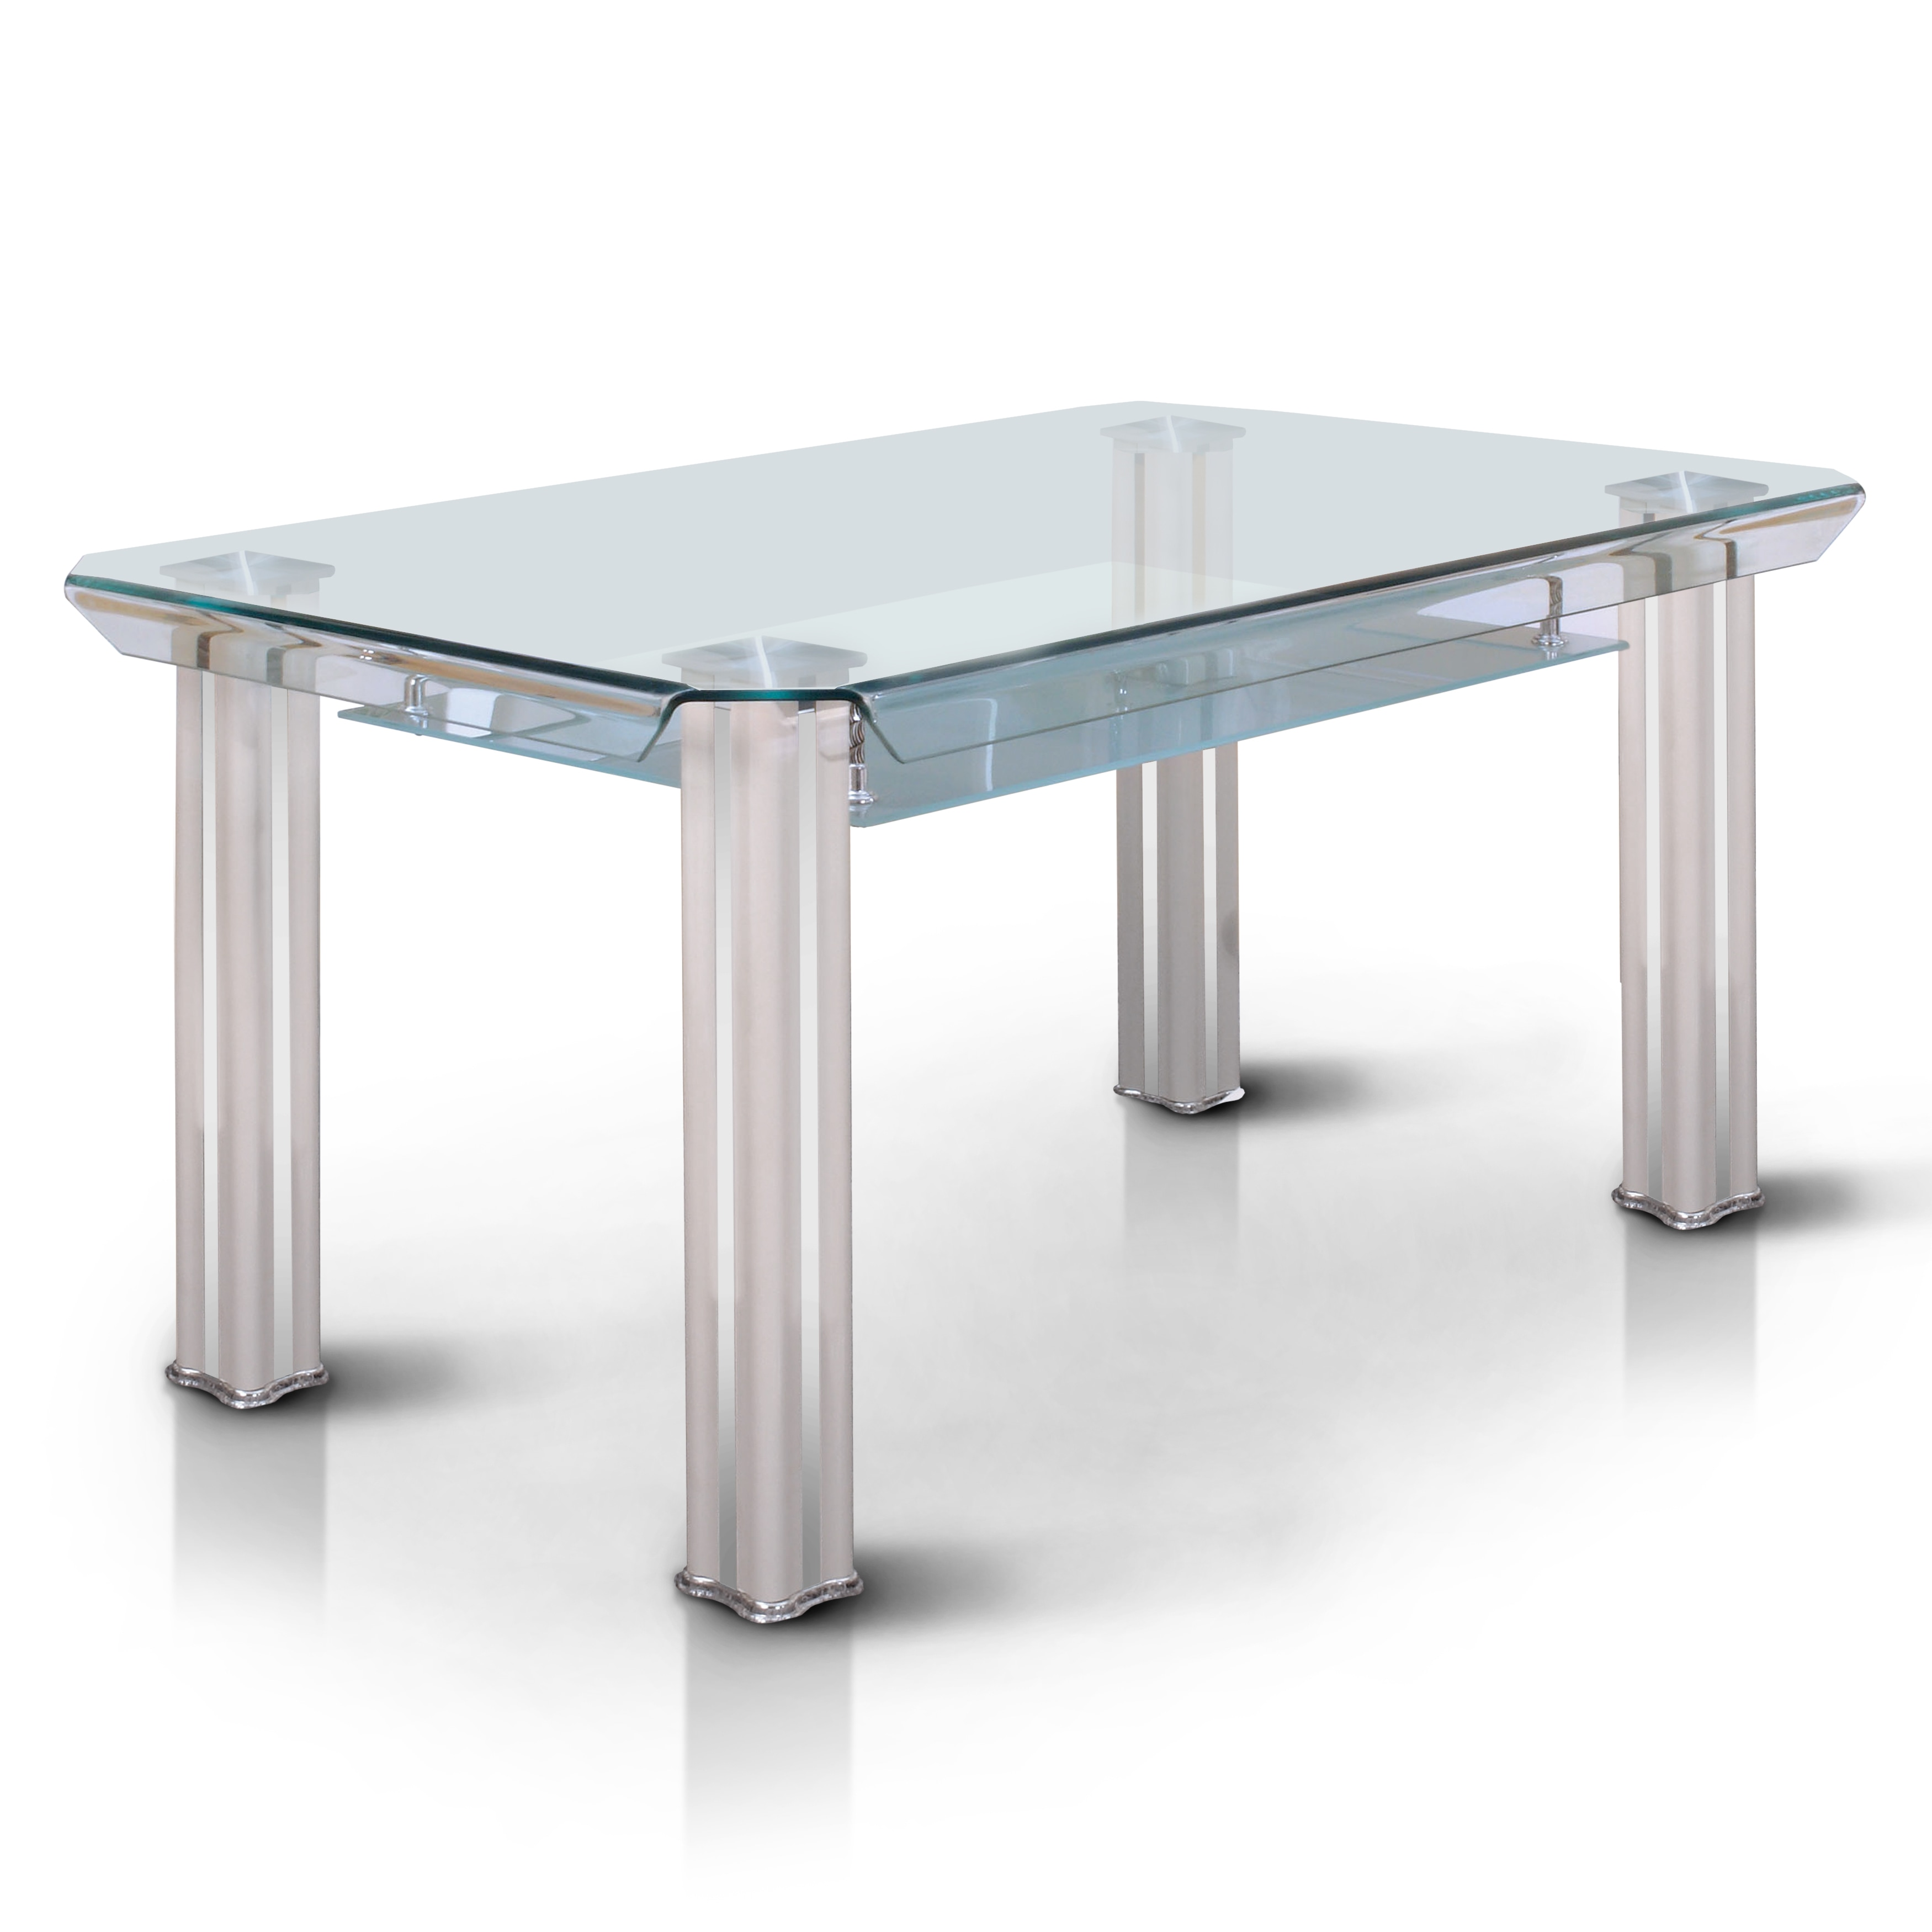 Furniture of america lordelle contemporary tempered glass 59 inch dining table